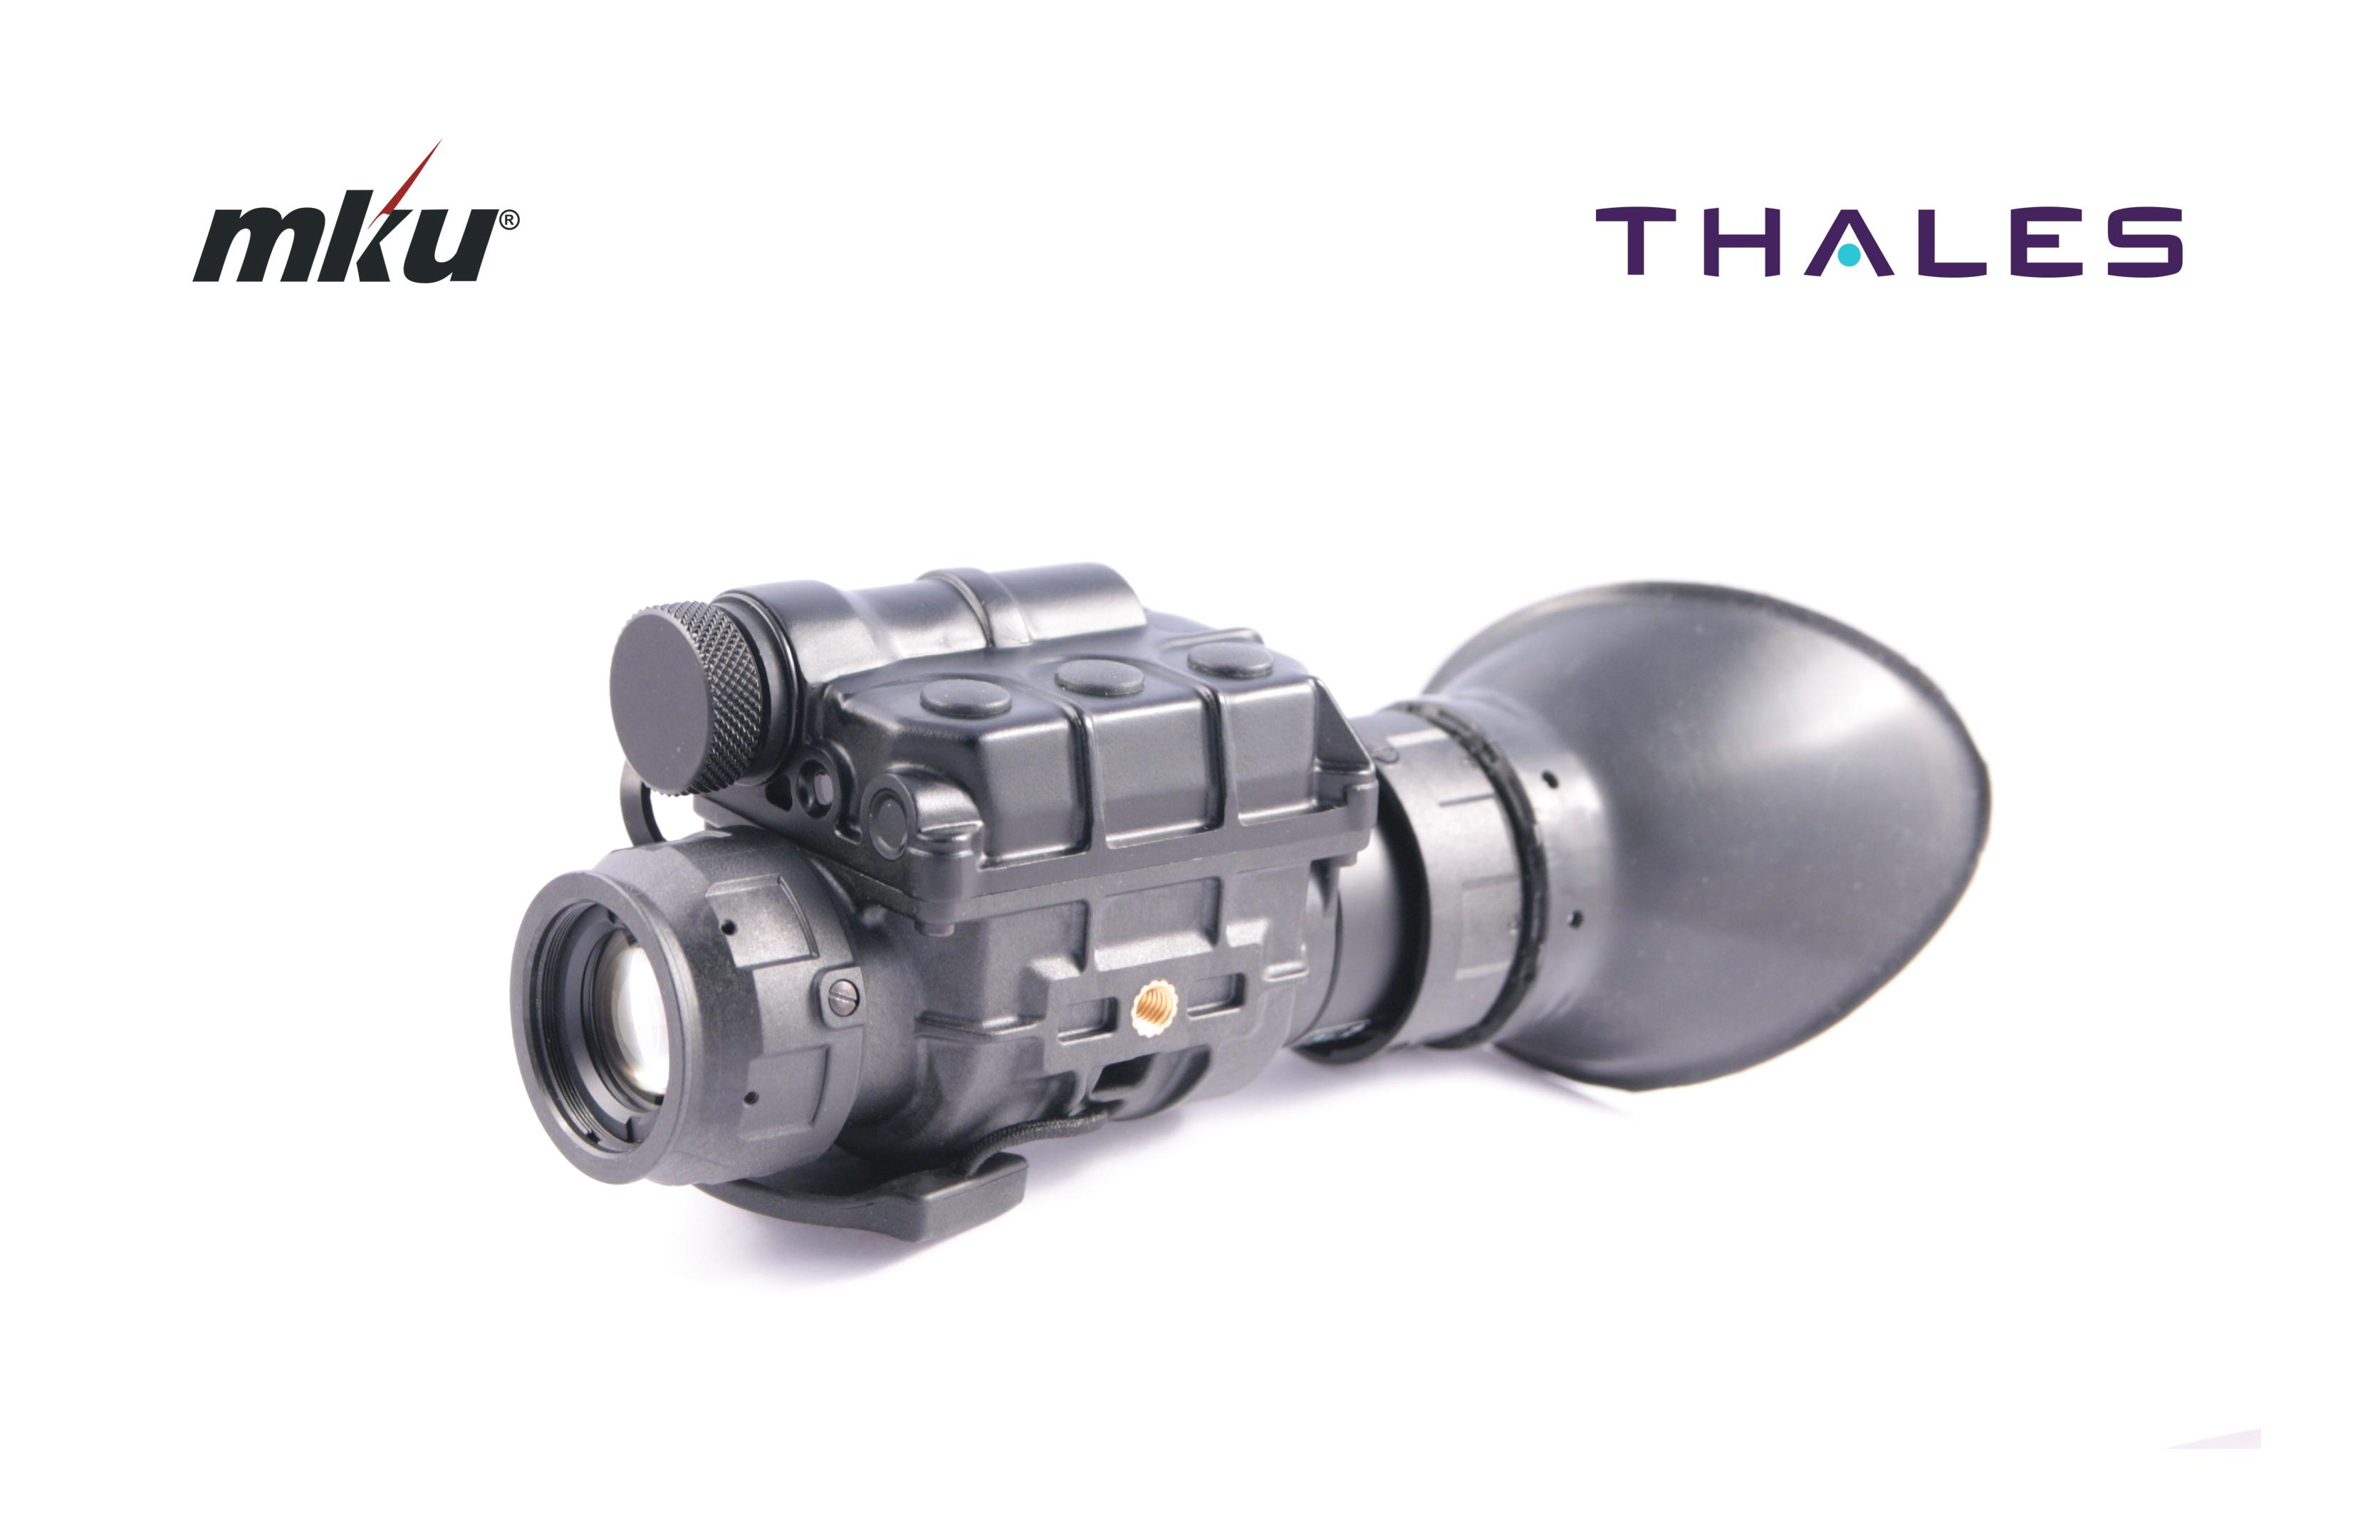 Mku And Thales Team Up To Develop Optronic Devices Close Quarter U S Soldiers High Tech Gadget For Better Night Vision Elfie Ii Nvd Thalesgroup